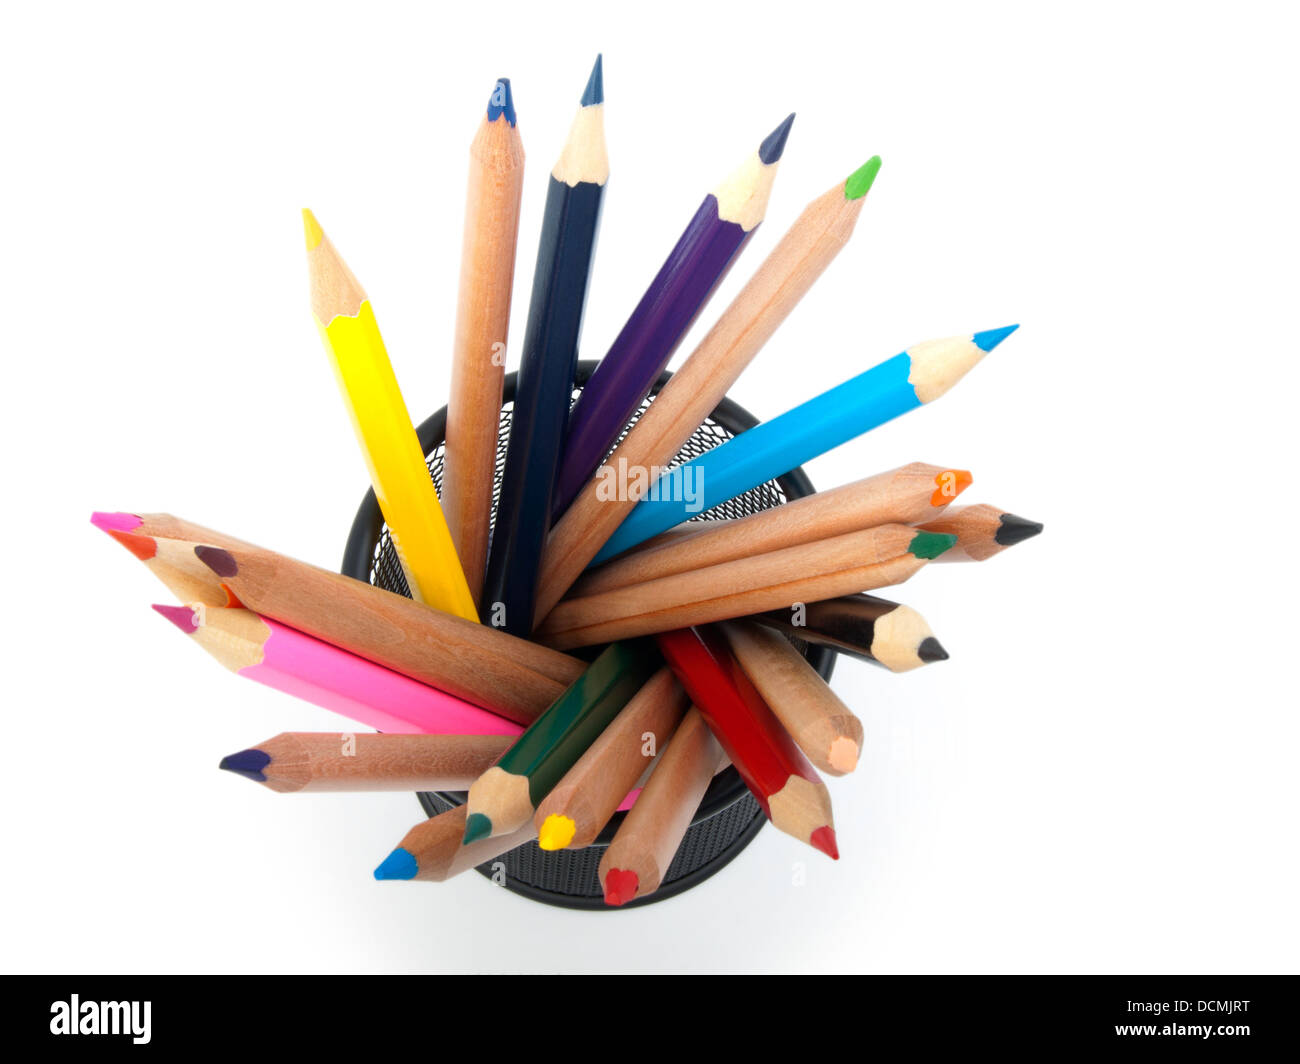 Isolation Materials Stock Photos Images Crayola Colored Pencils Long Isi 24 In Pot Isolated Image